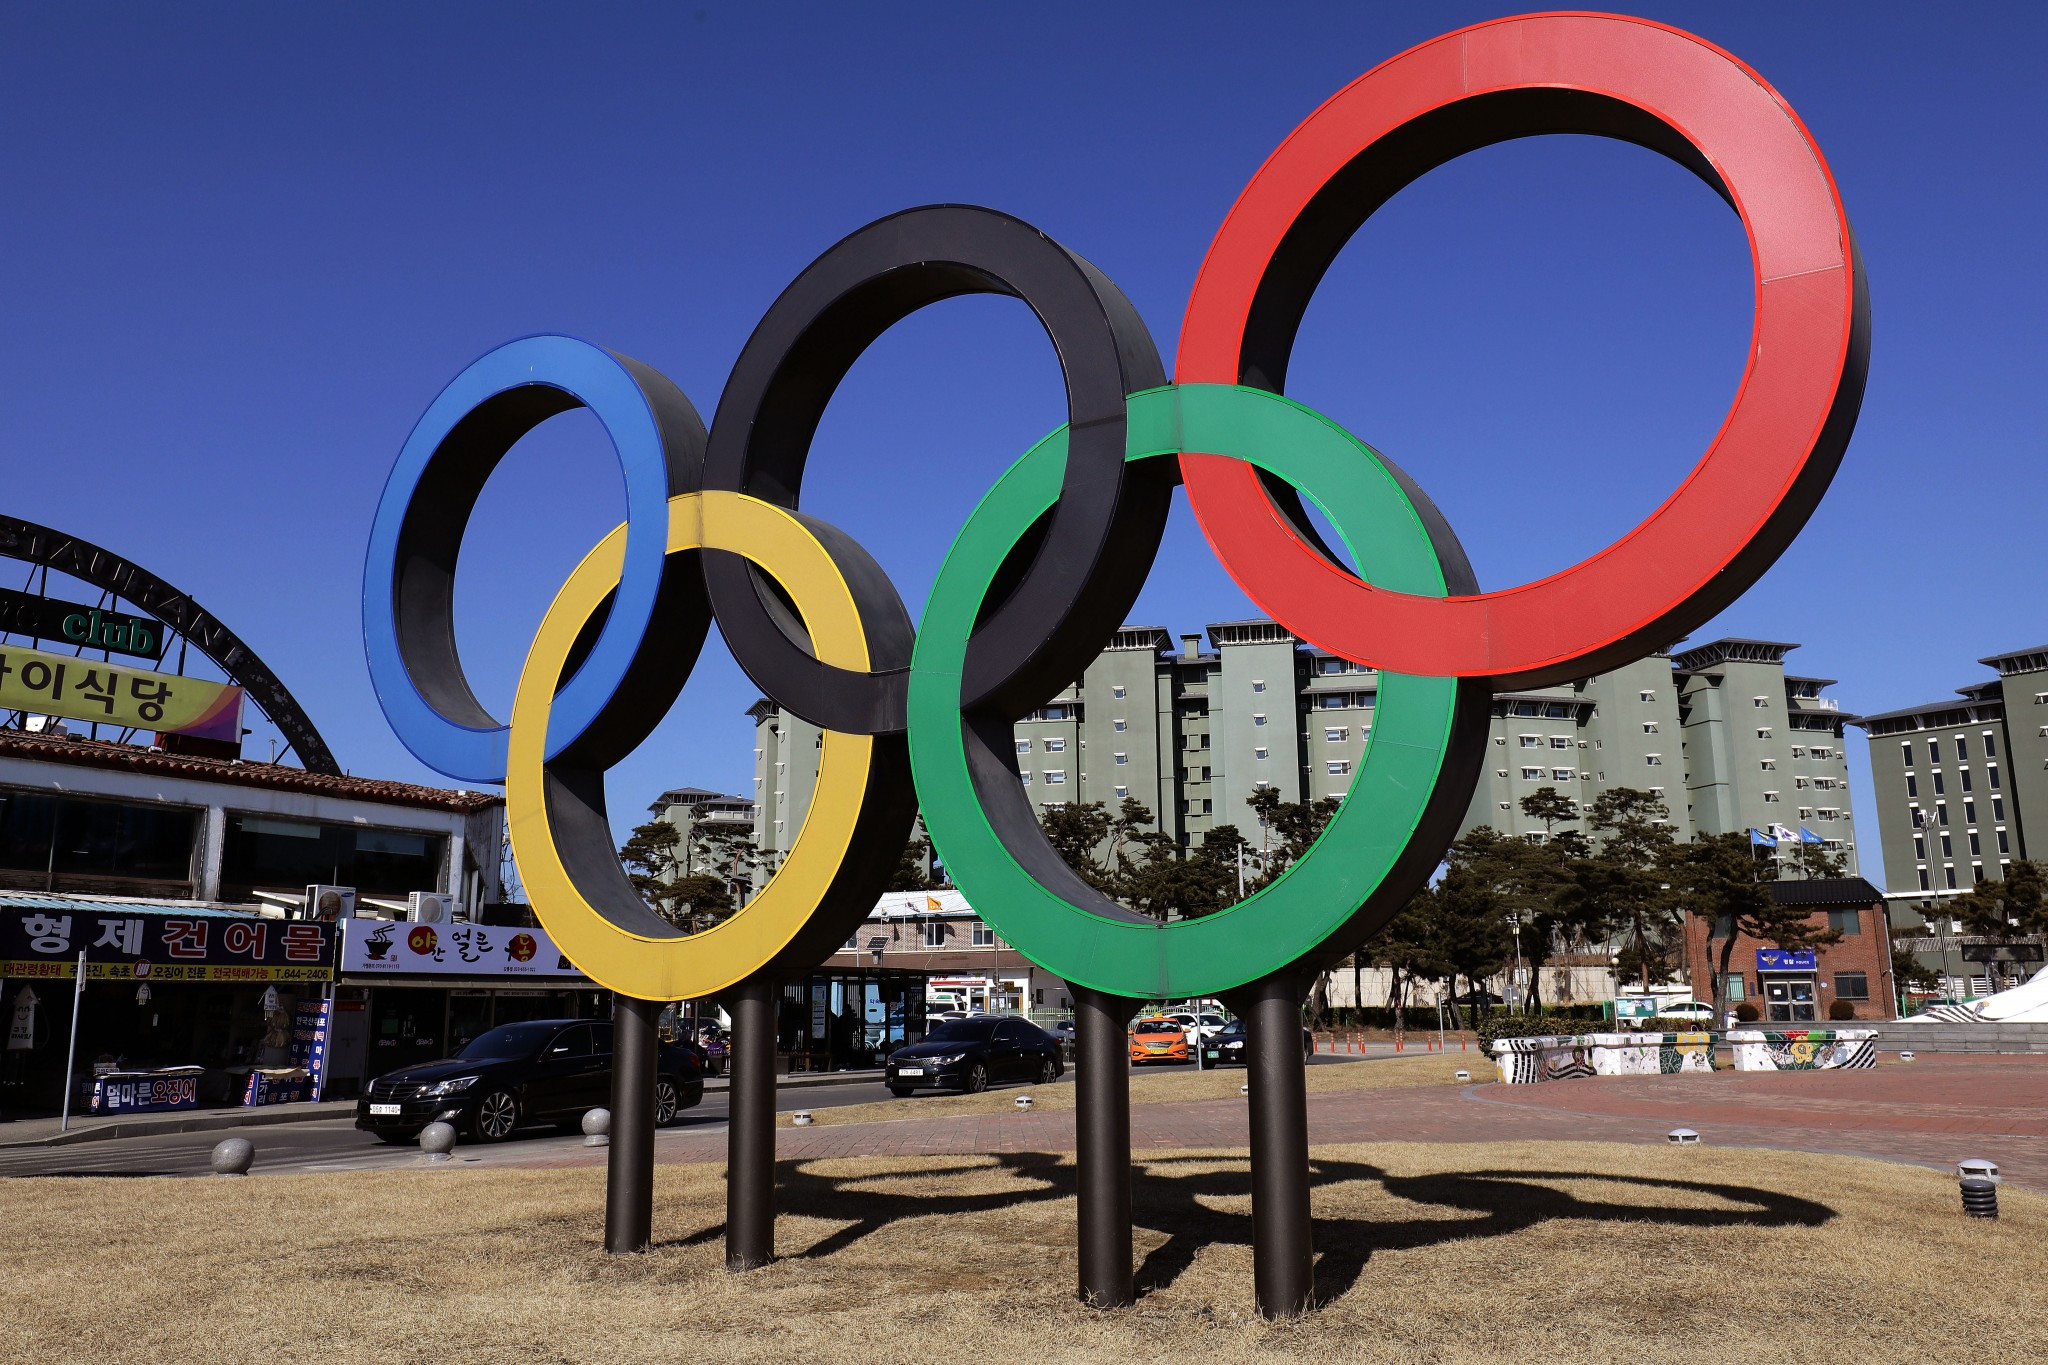 New analysis has been carried out by insidethegames on the IOC accounts ©Getty Images